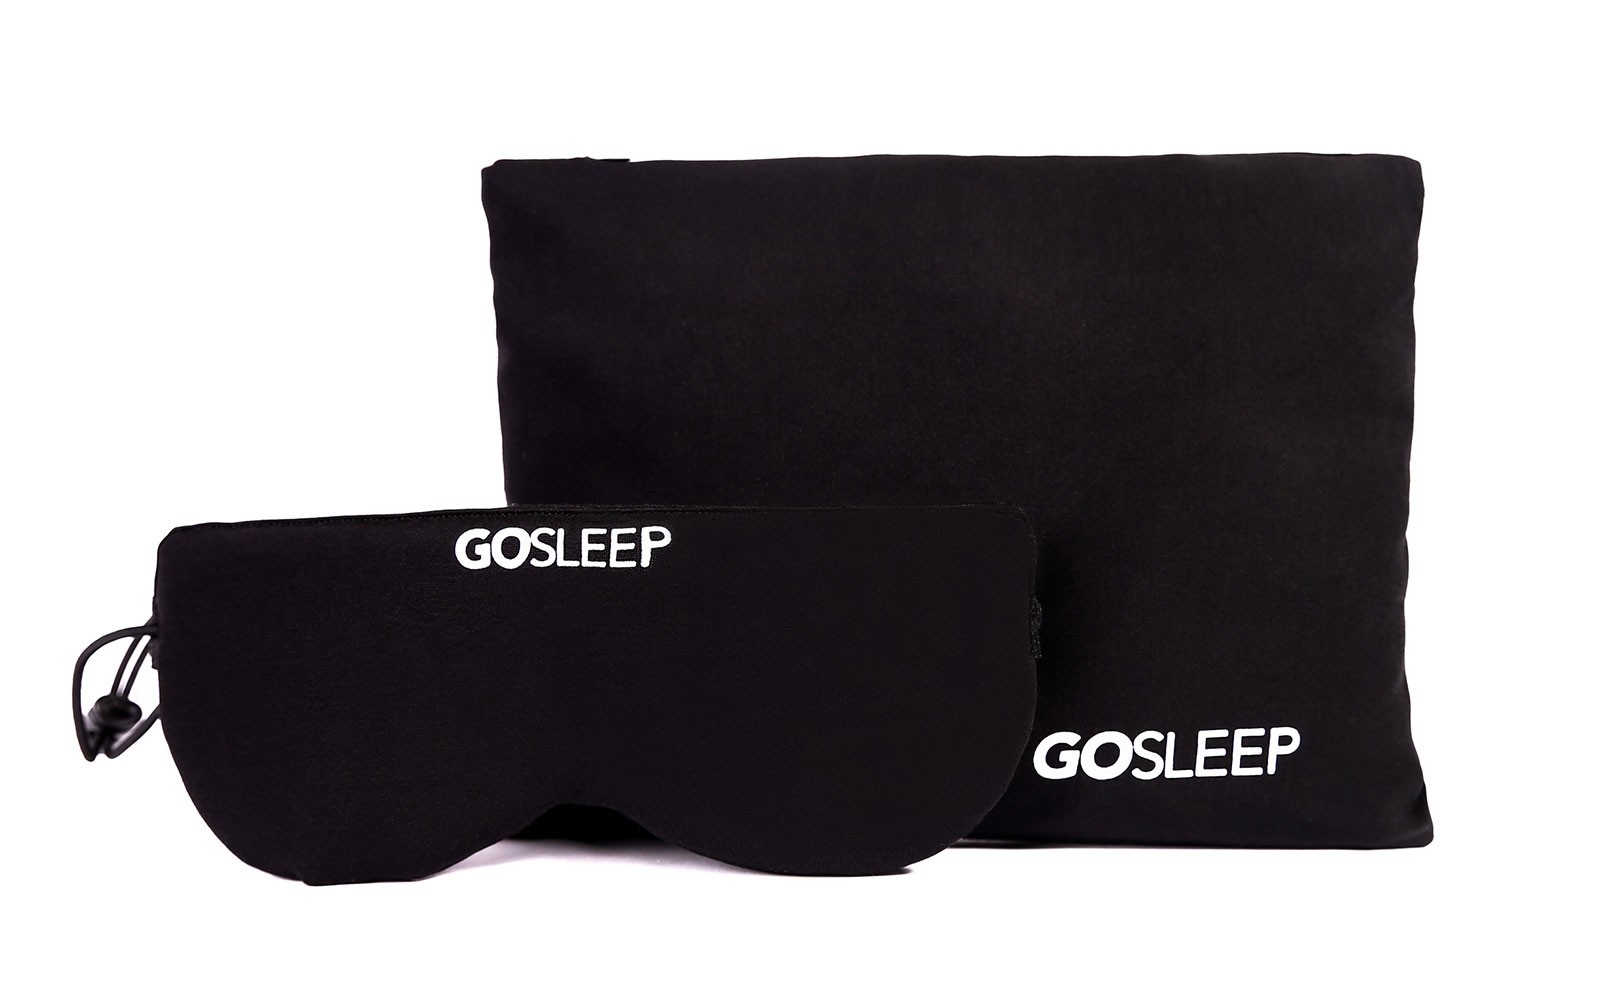 Review: GoSleep Mask and Pillow